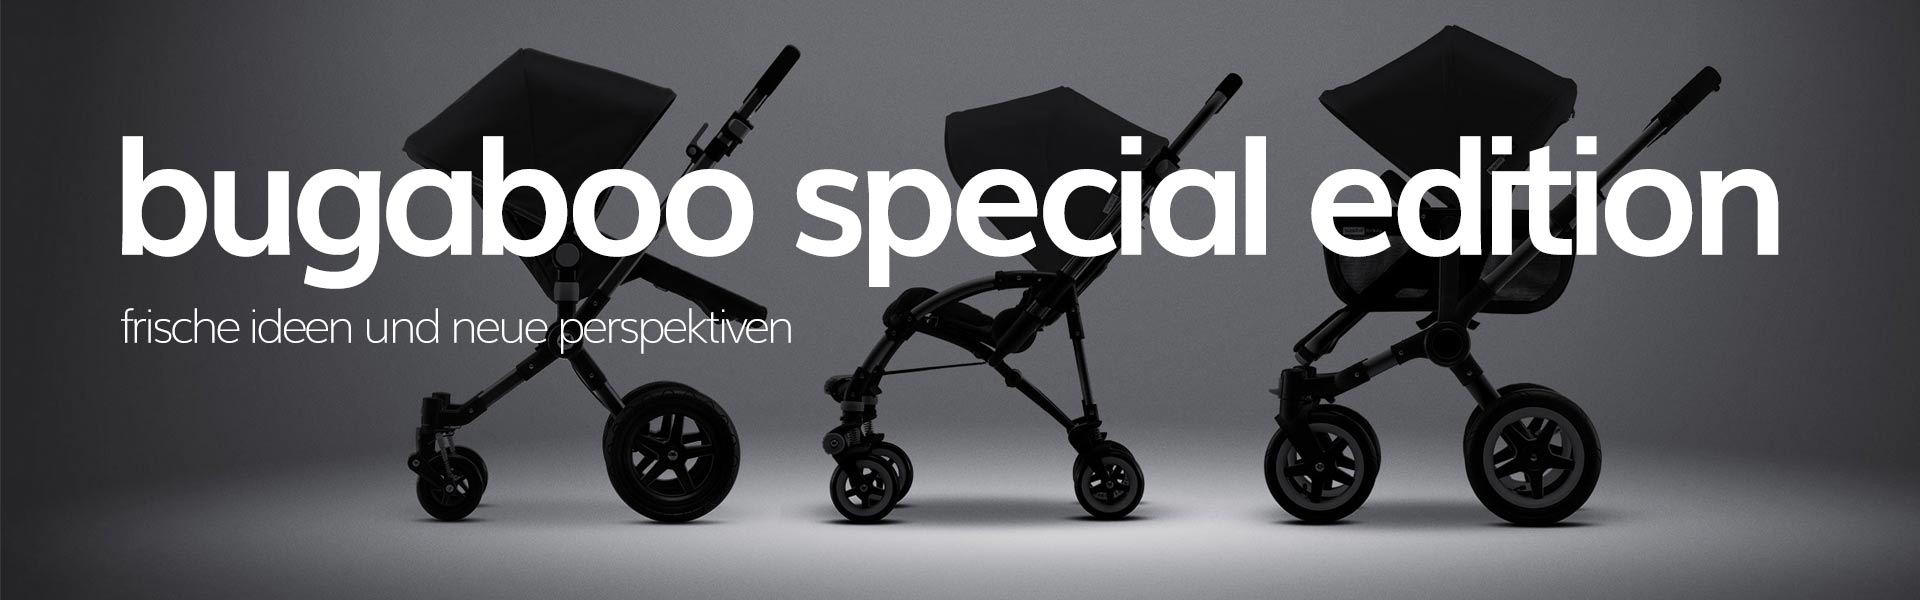 Bugaboo-Special-Edition - KATEGORIE